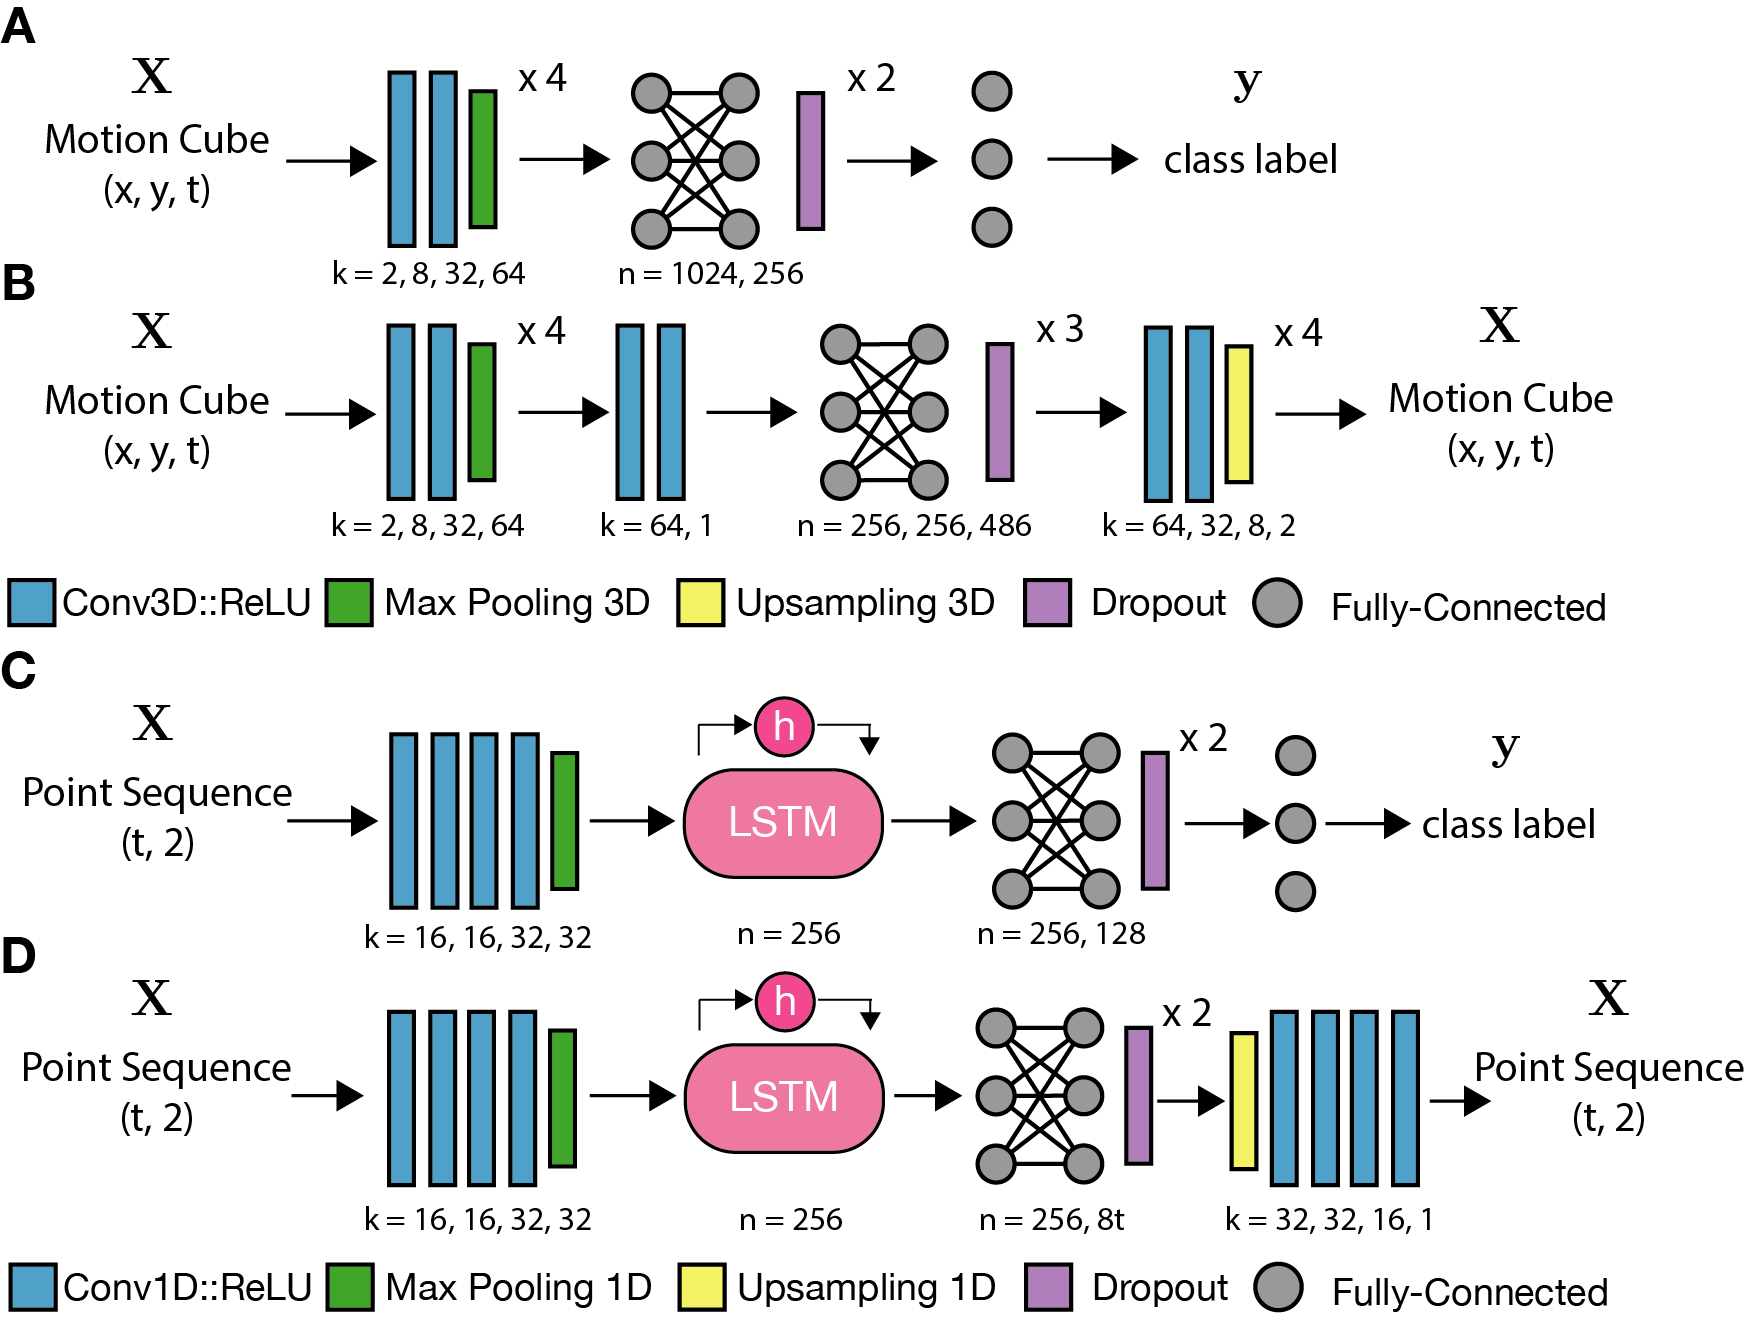 (A) 3D CNN classification and (B) autoencoder architecture. (C) RNN classification and (D) autoencoder architecture.